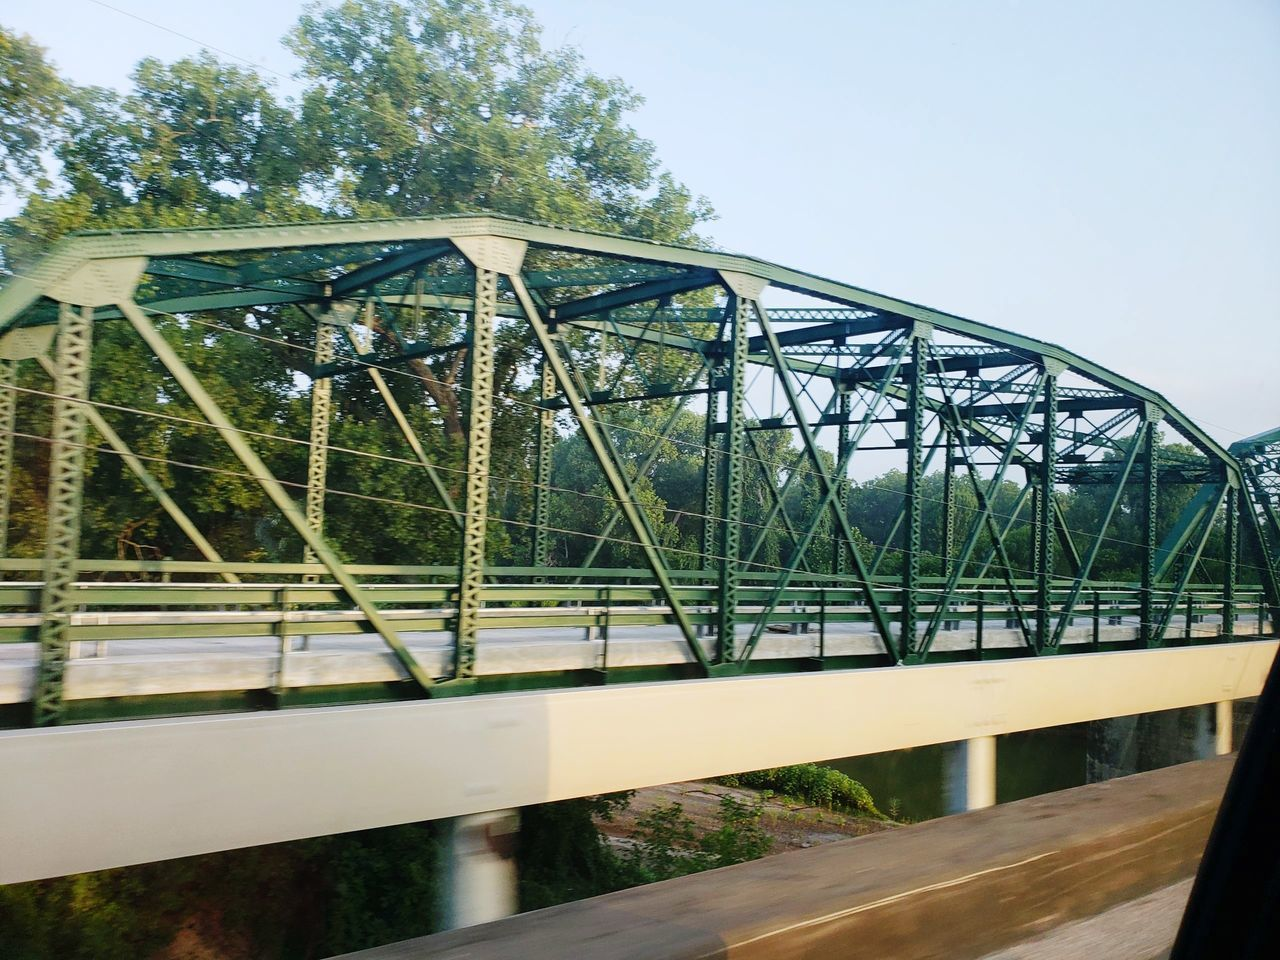 LOW ANGLE VIEW OF BRIDGE OVER RIVER AGAINST CLEAR SKY